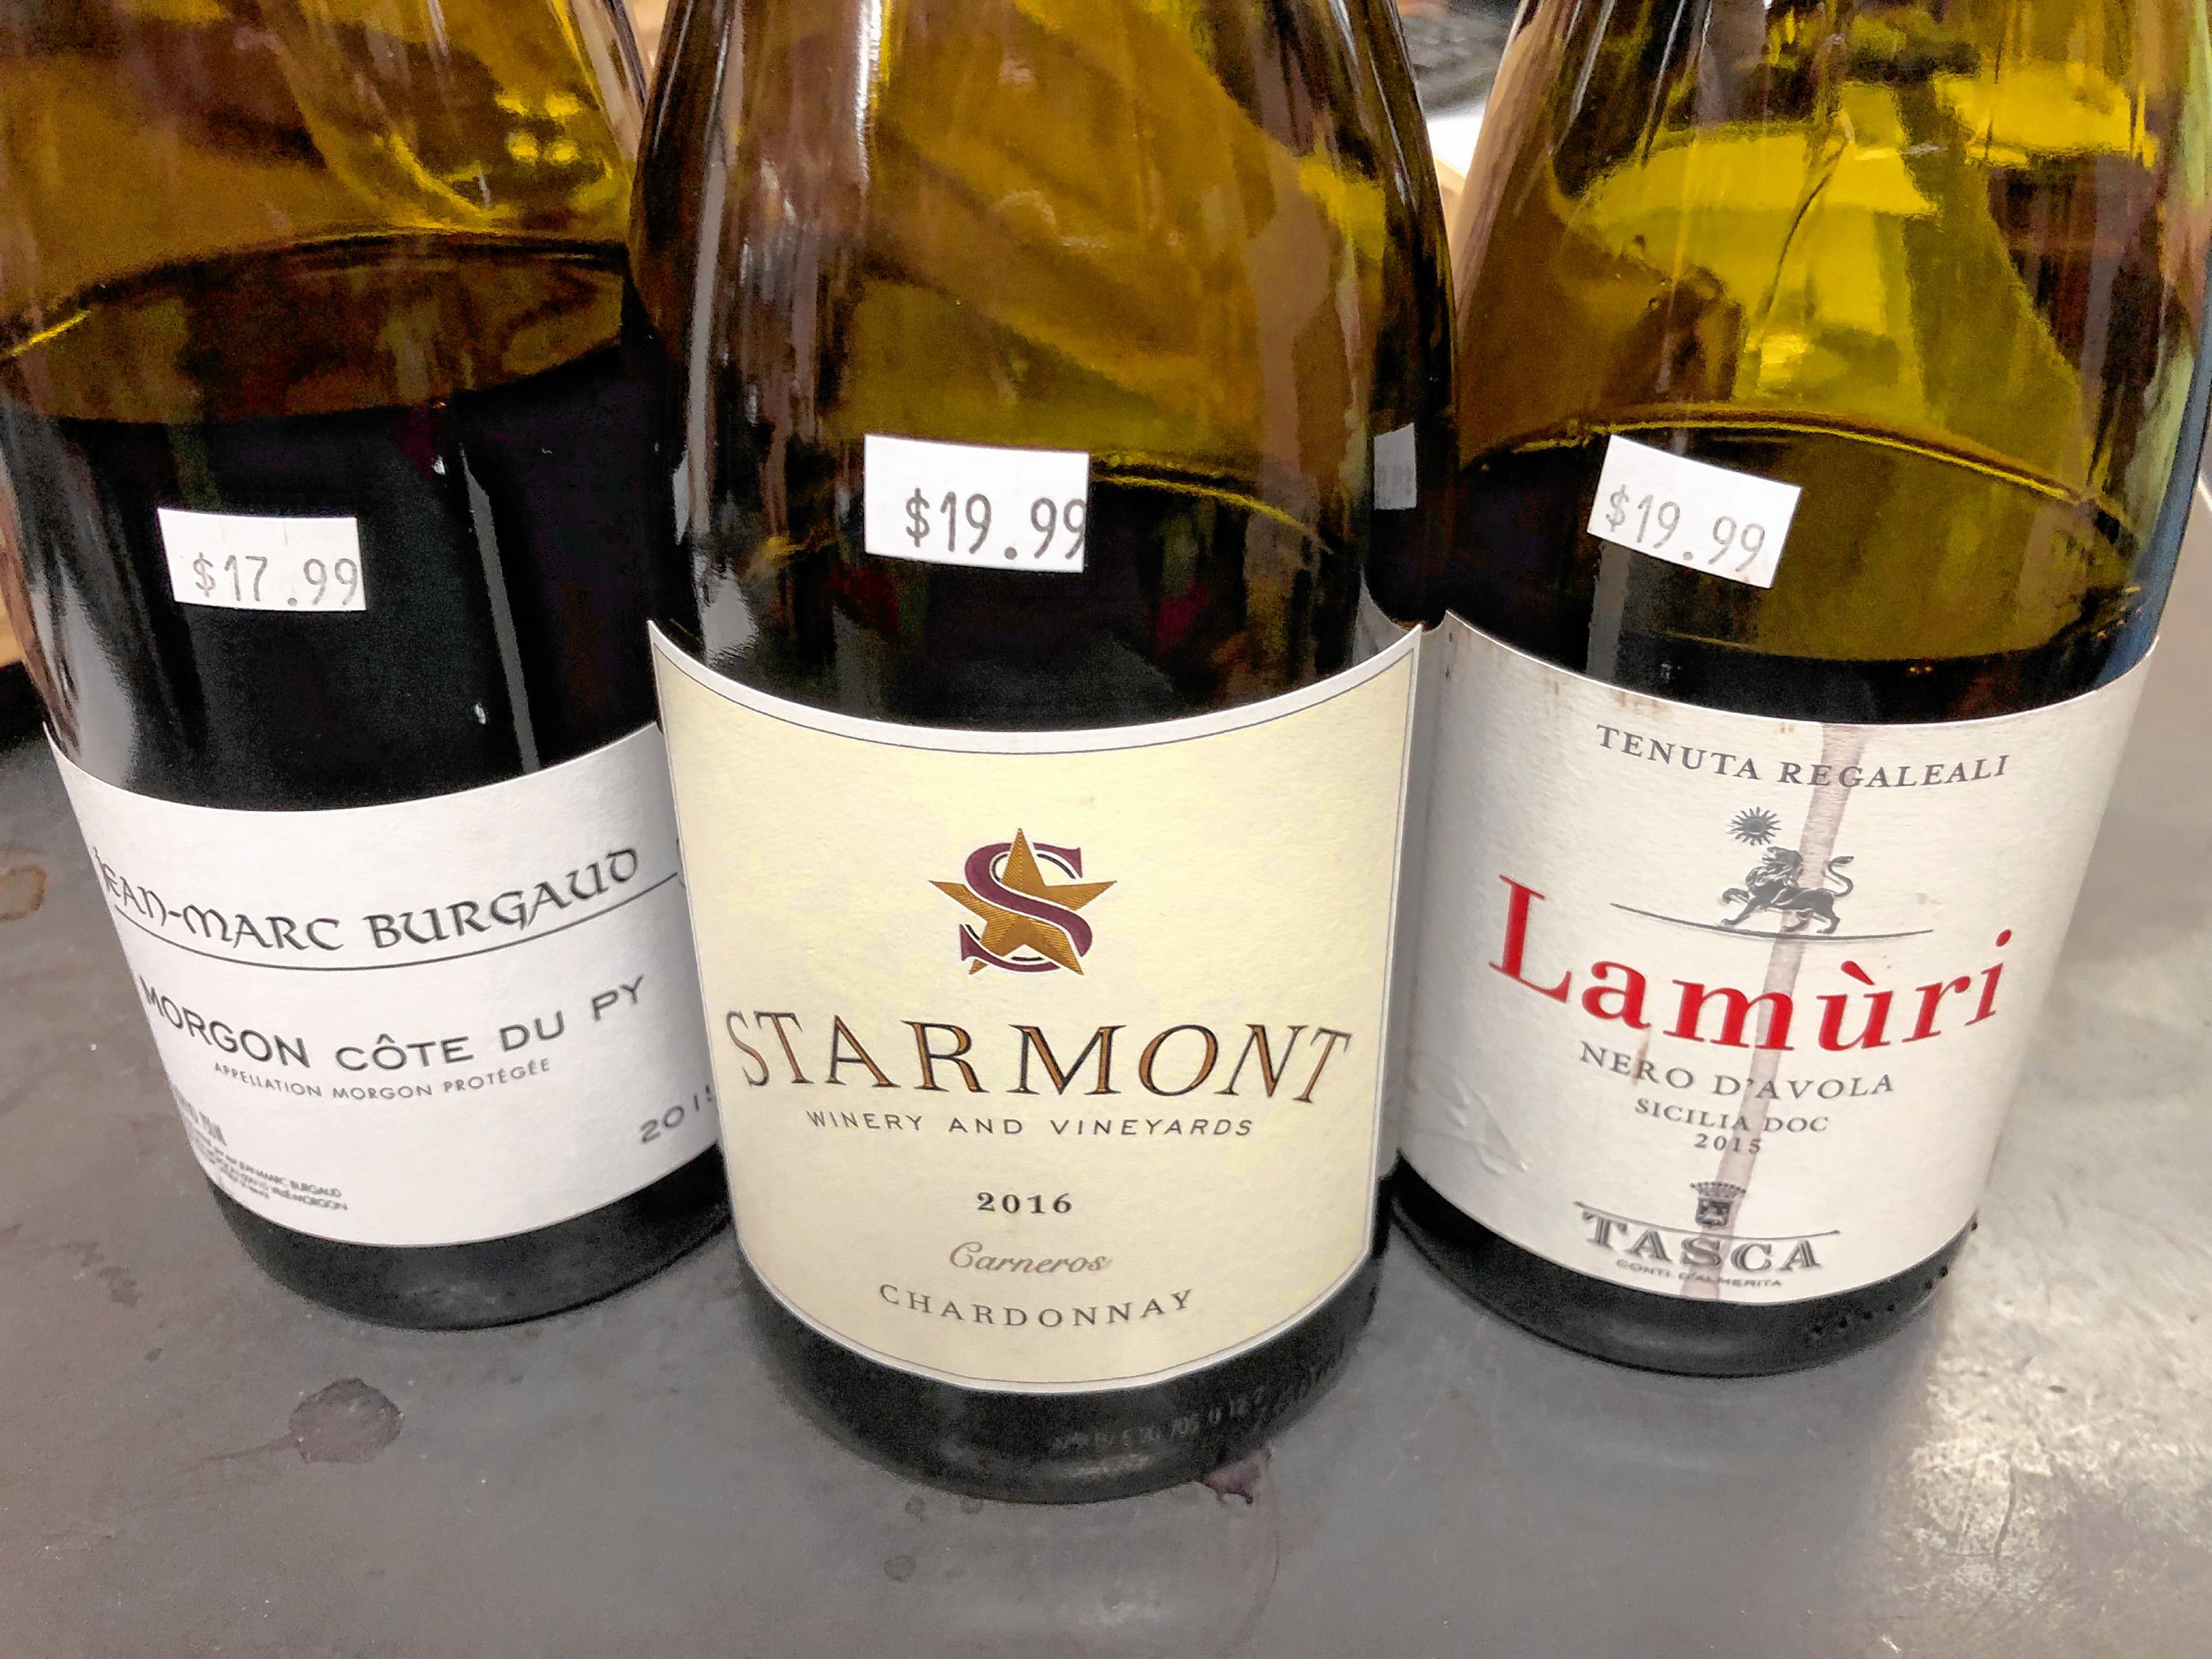 Monte Belmonte Wines: An Unscientific Blind Taste Test